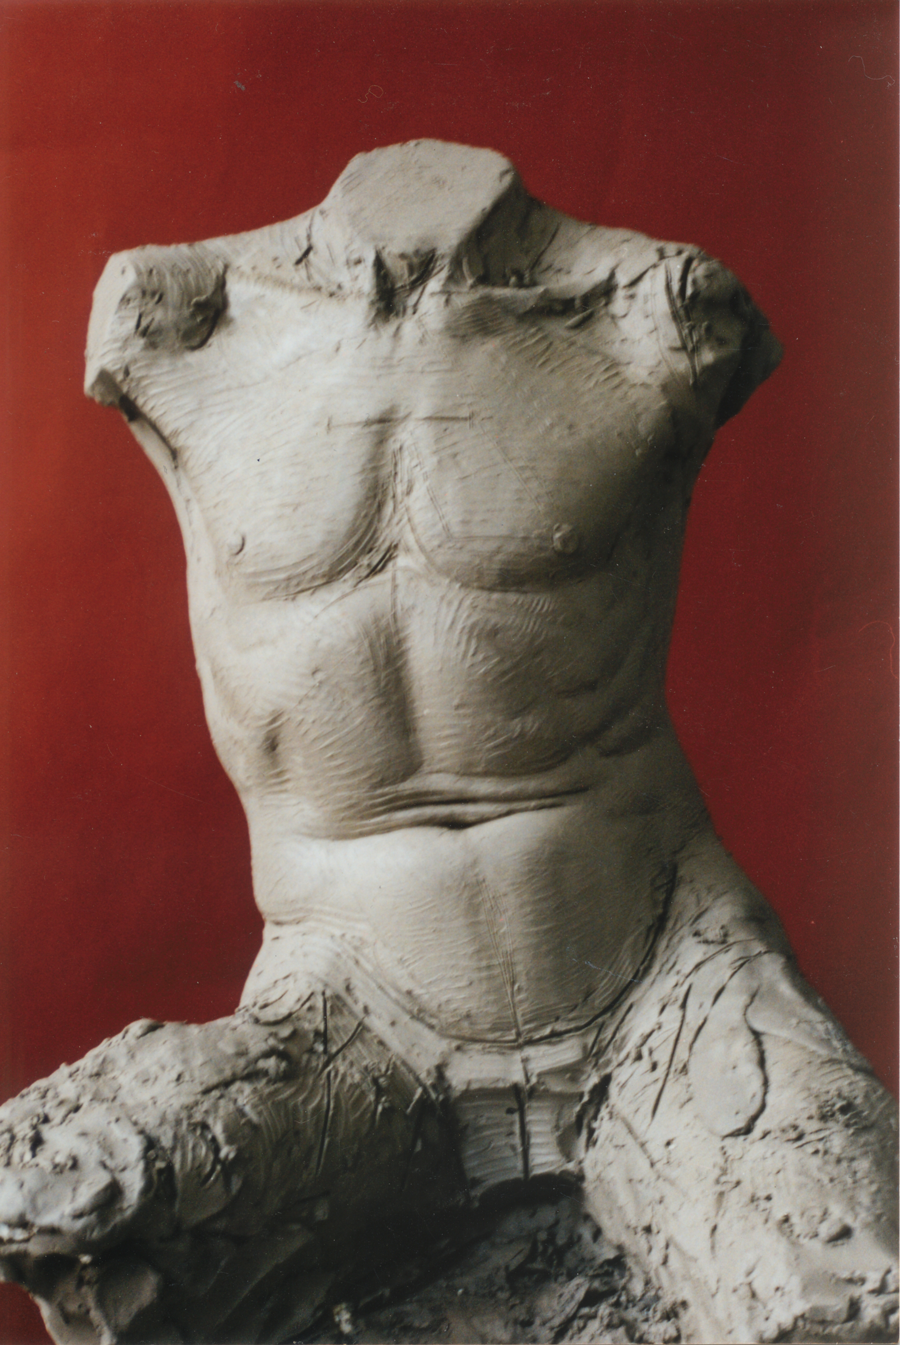 thanasi-torso-study-gianni-sculpture.png